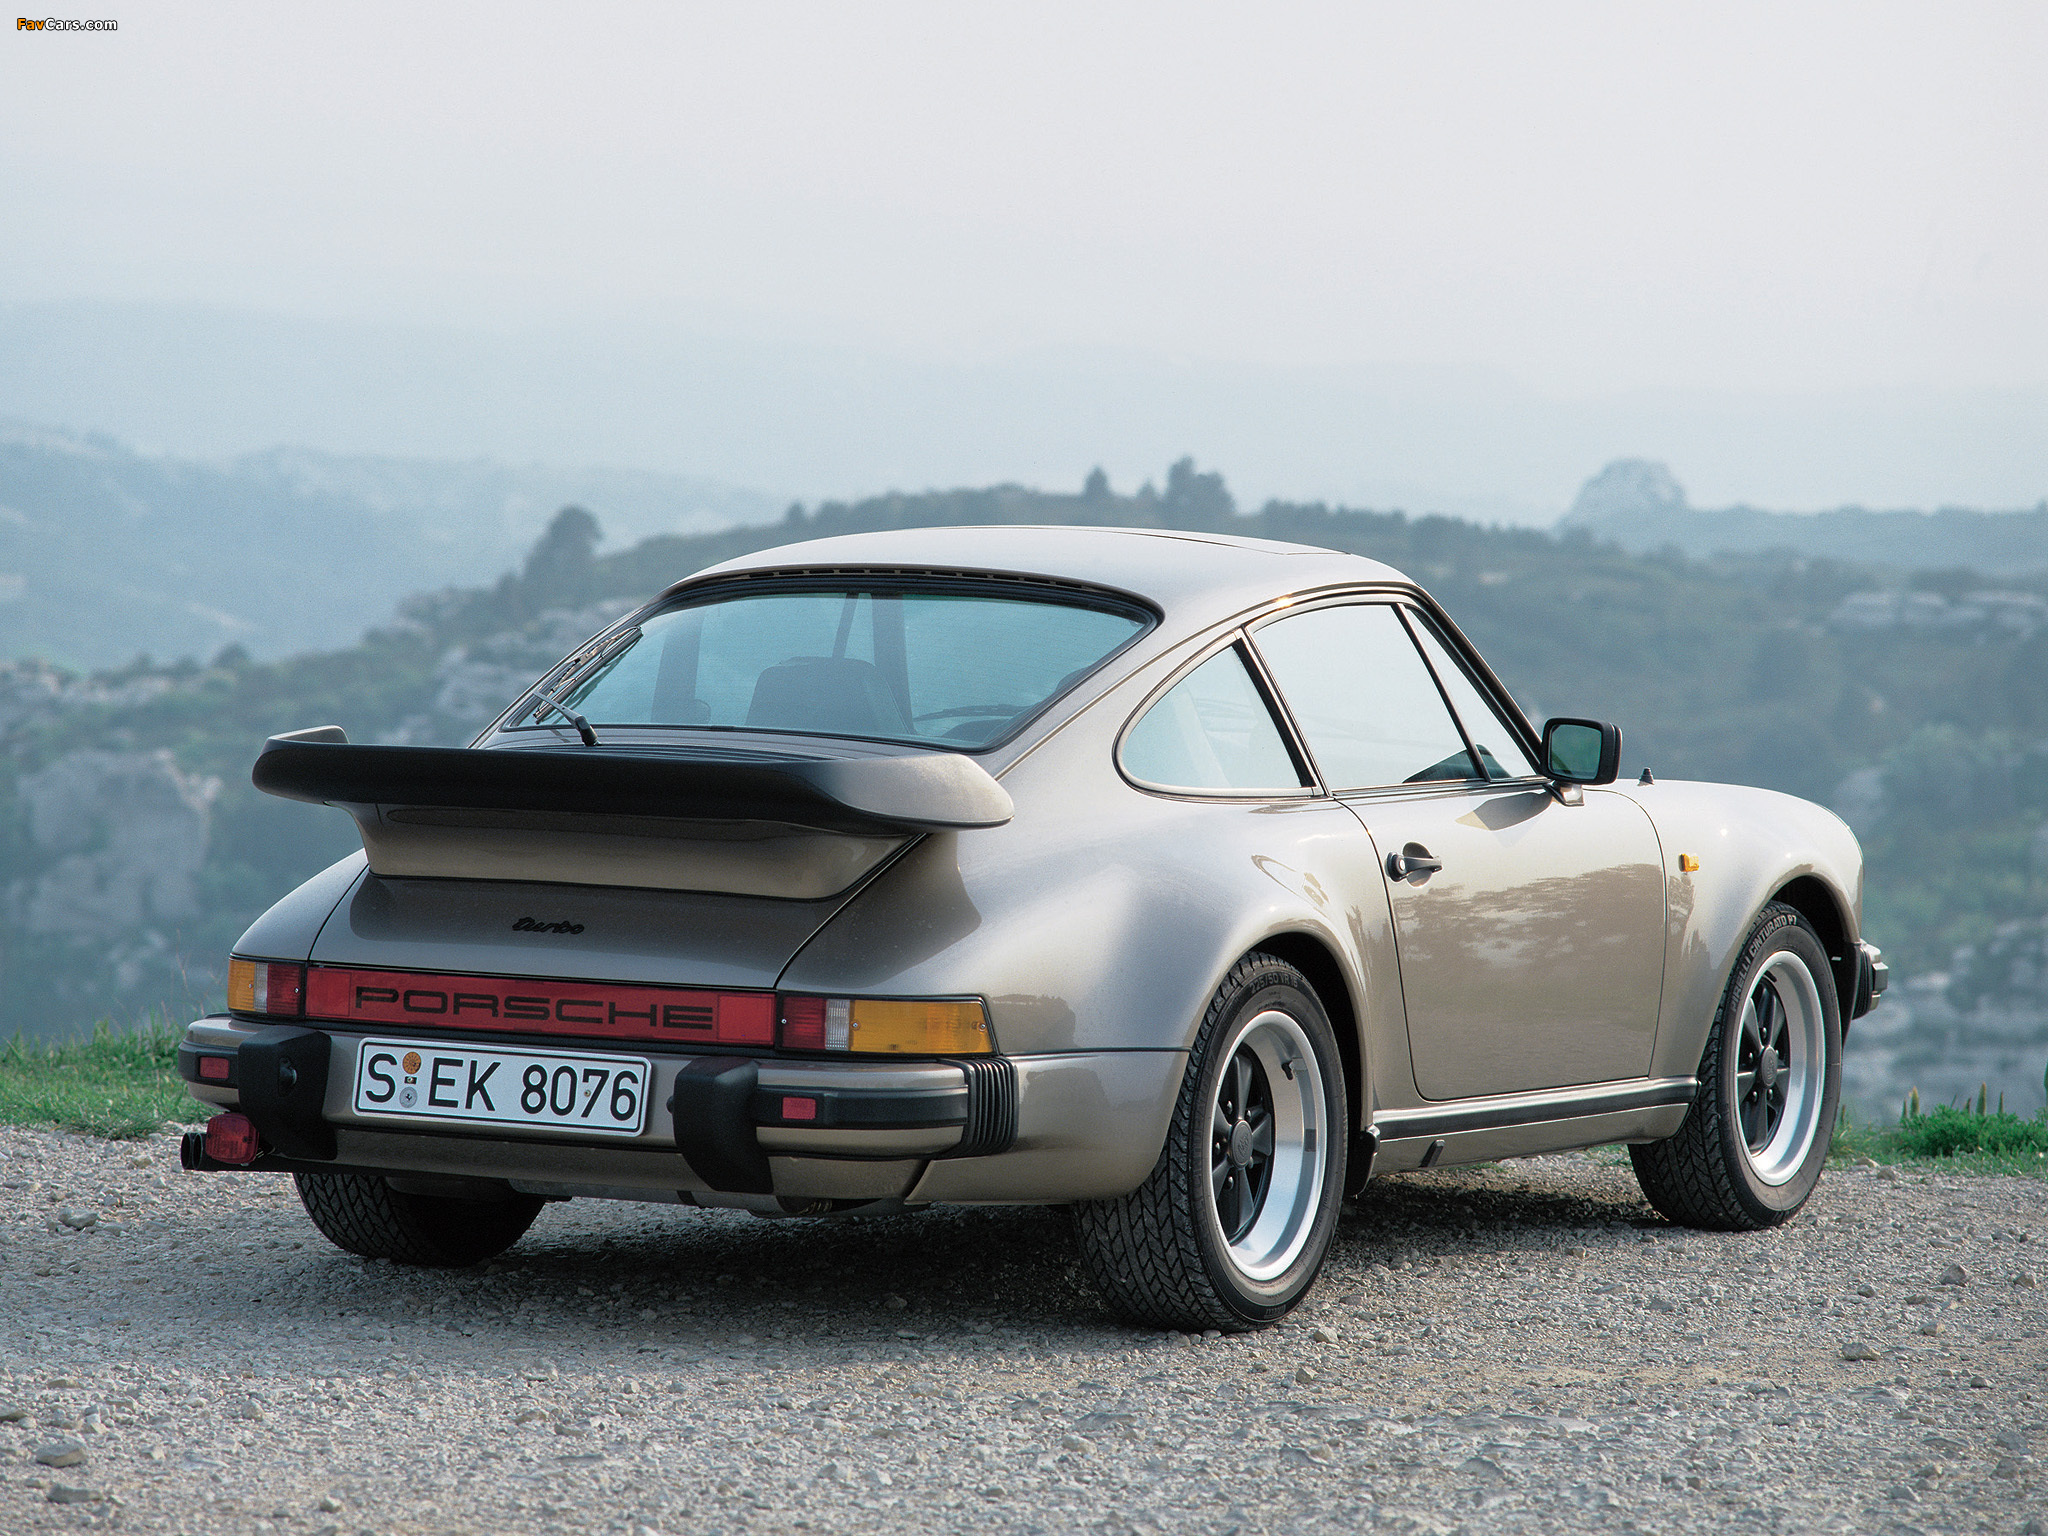 2048x1536 Car Wallpapers Porsche 911 Turbo 3 3 Coupe 930 1978 89 Wallpapers